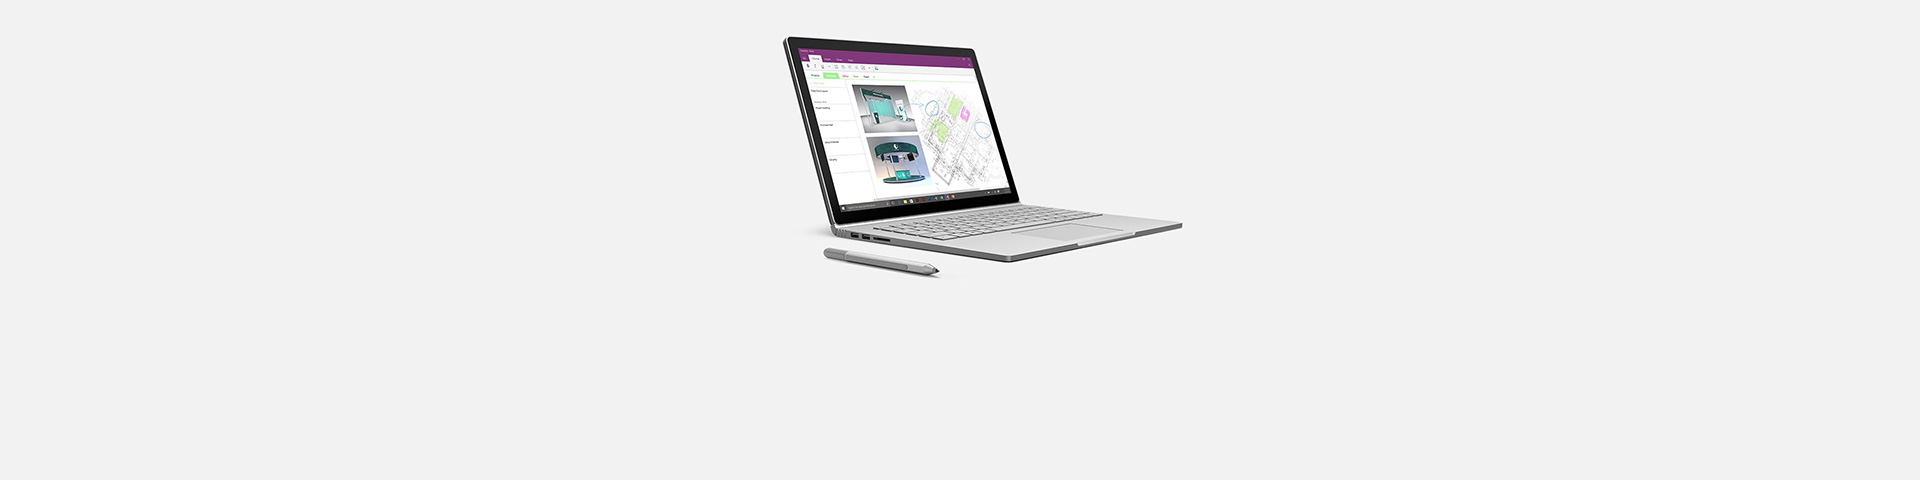 Surface Book;瞭解更多